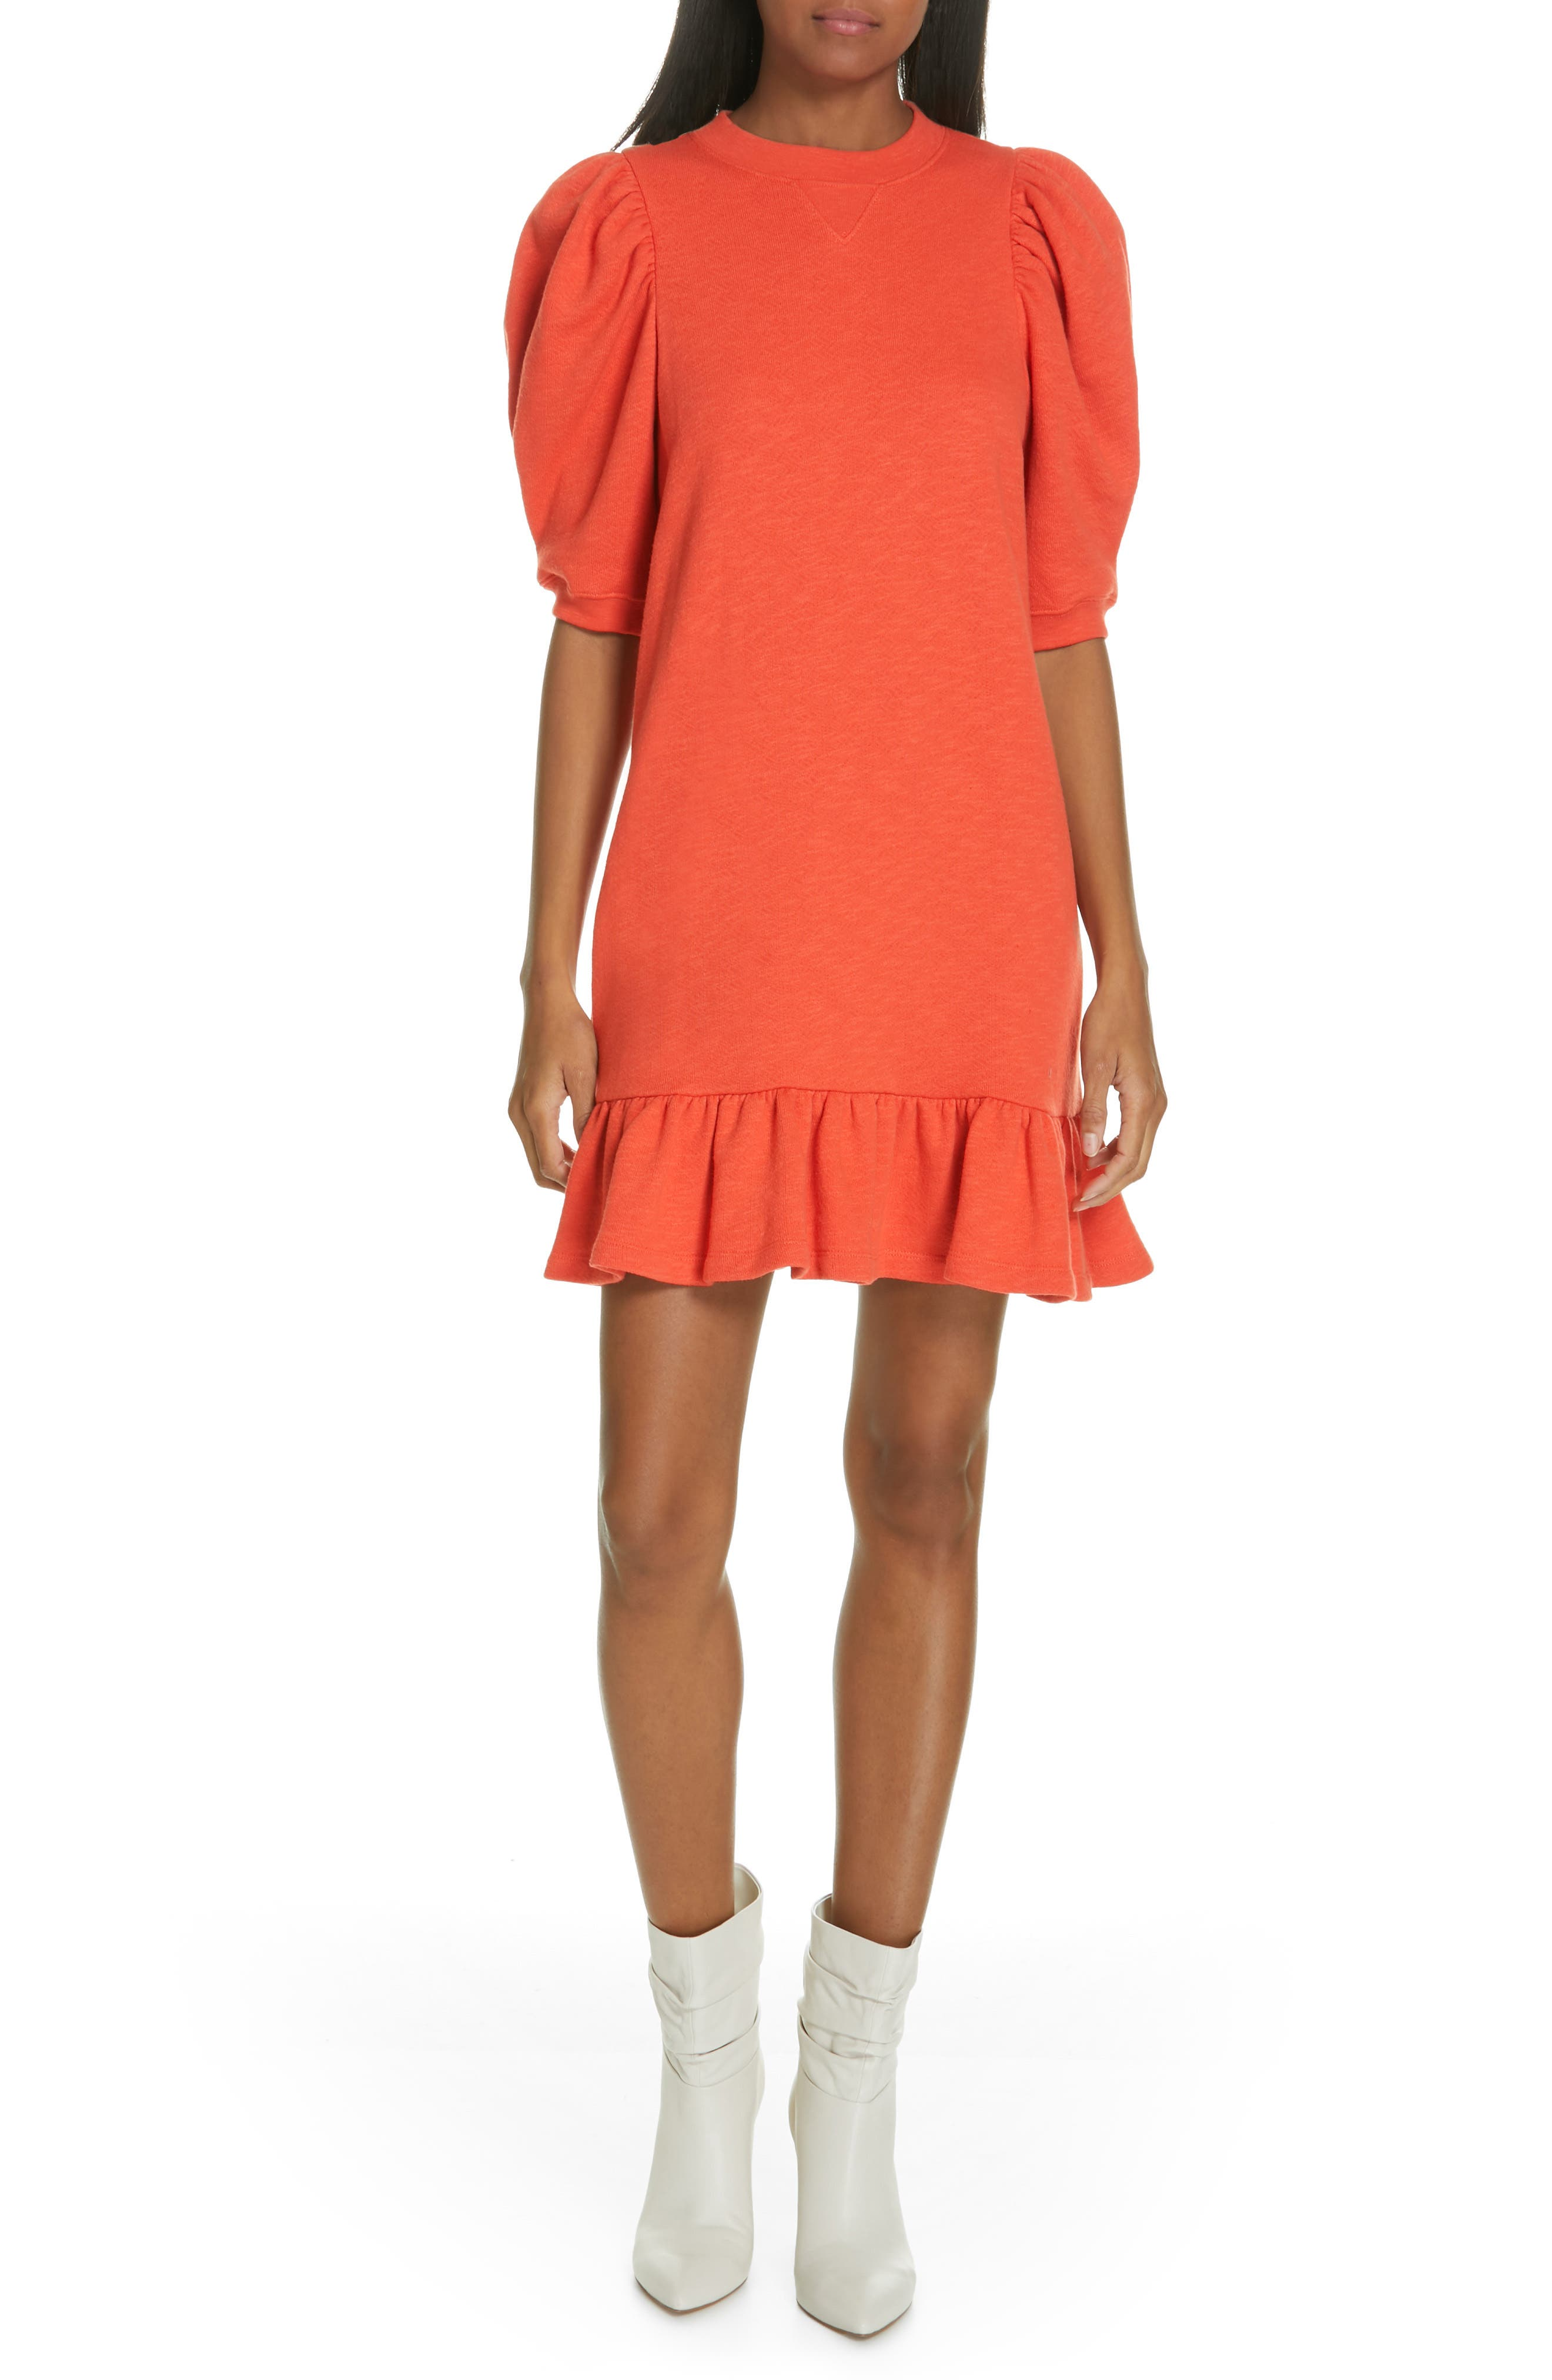 ULLA JOHNSON Landry Puff Sleeve Sweatshirt Dress, Main, color, CHILI